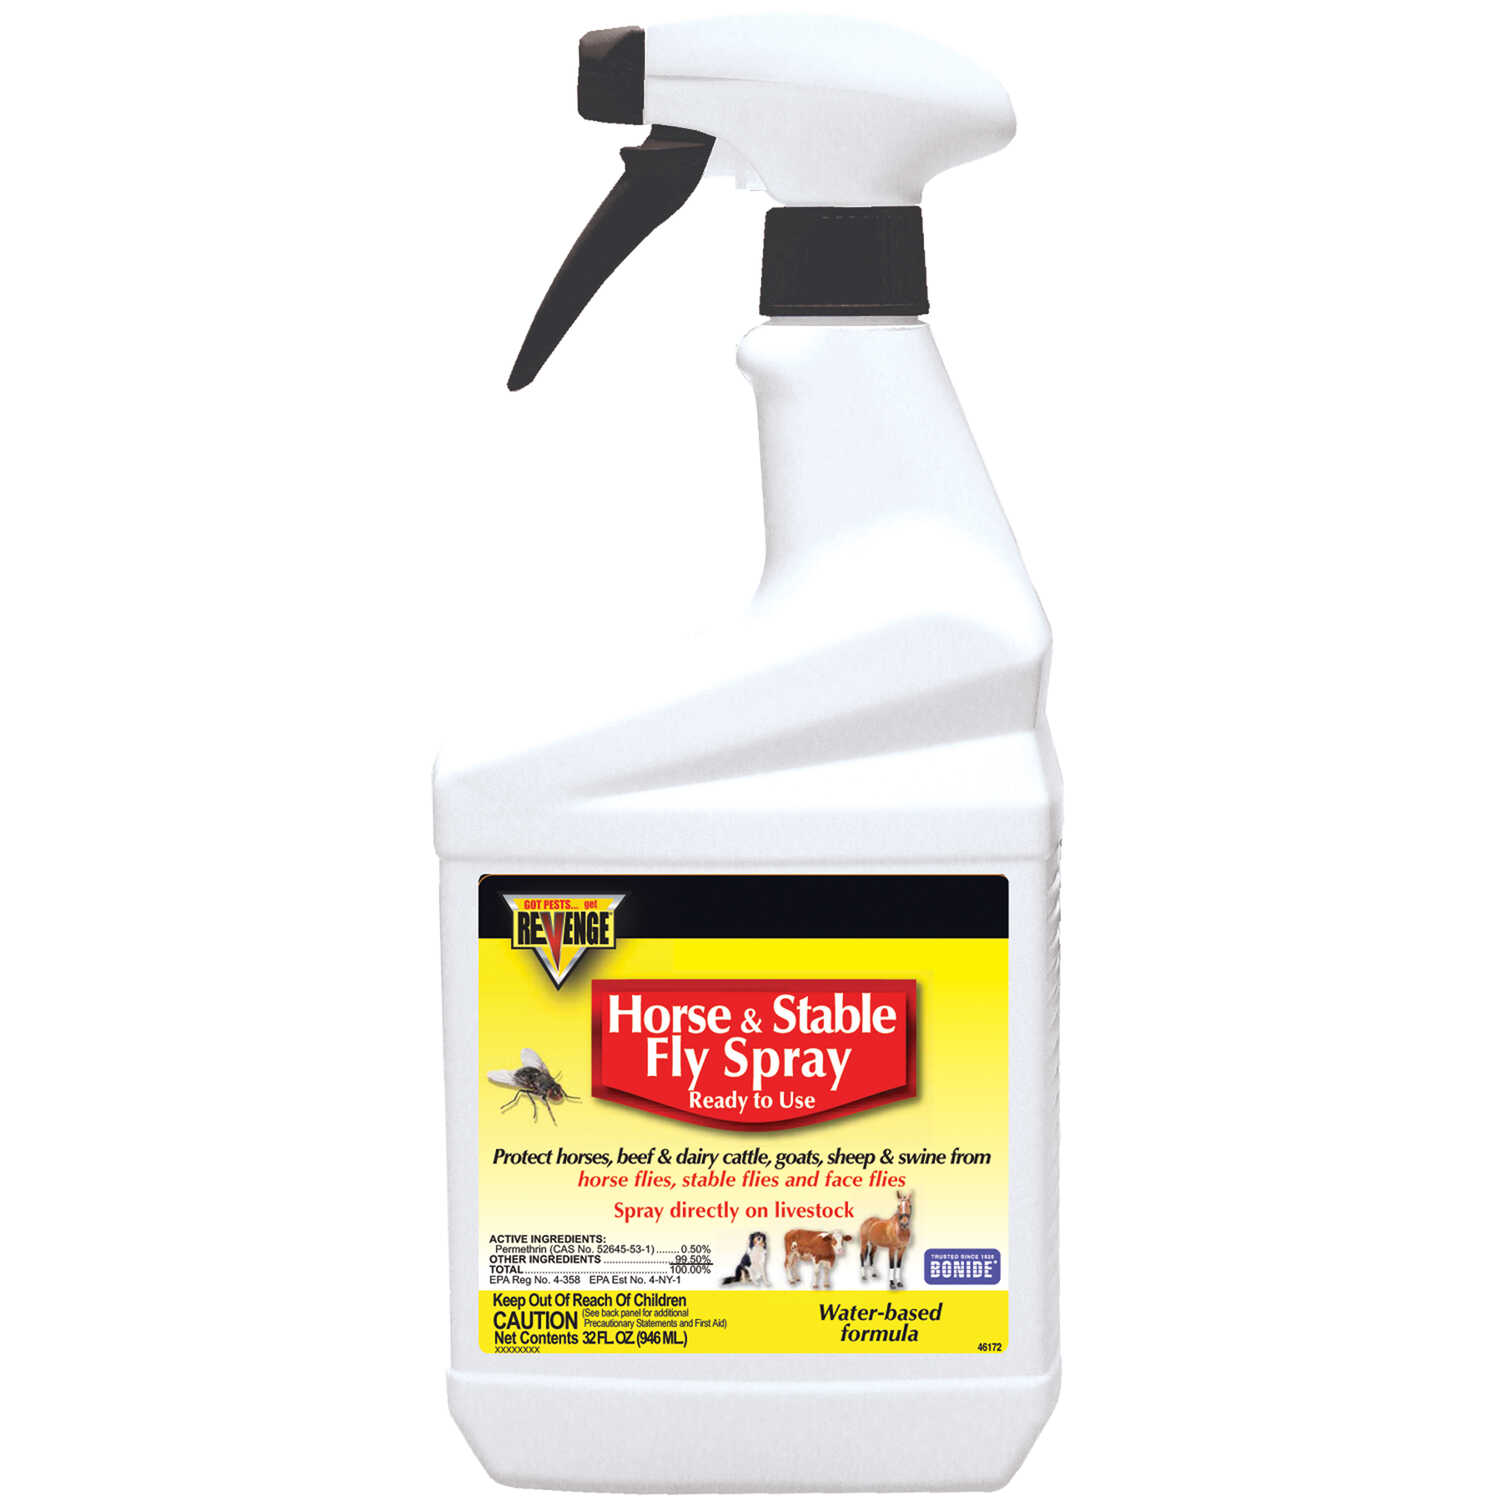 Bonide  Revenge Horse & Stable Fly Spray  Insect Killer  1 qt.